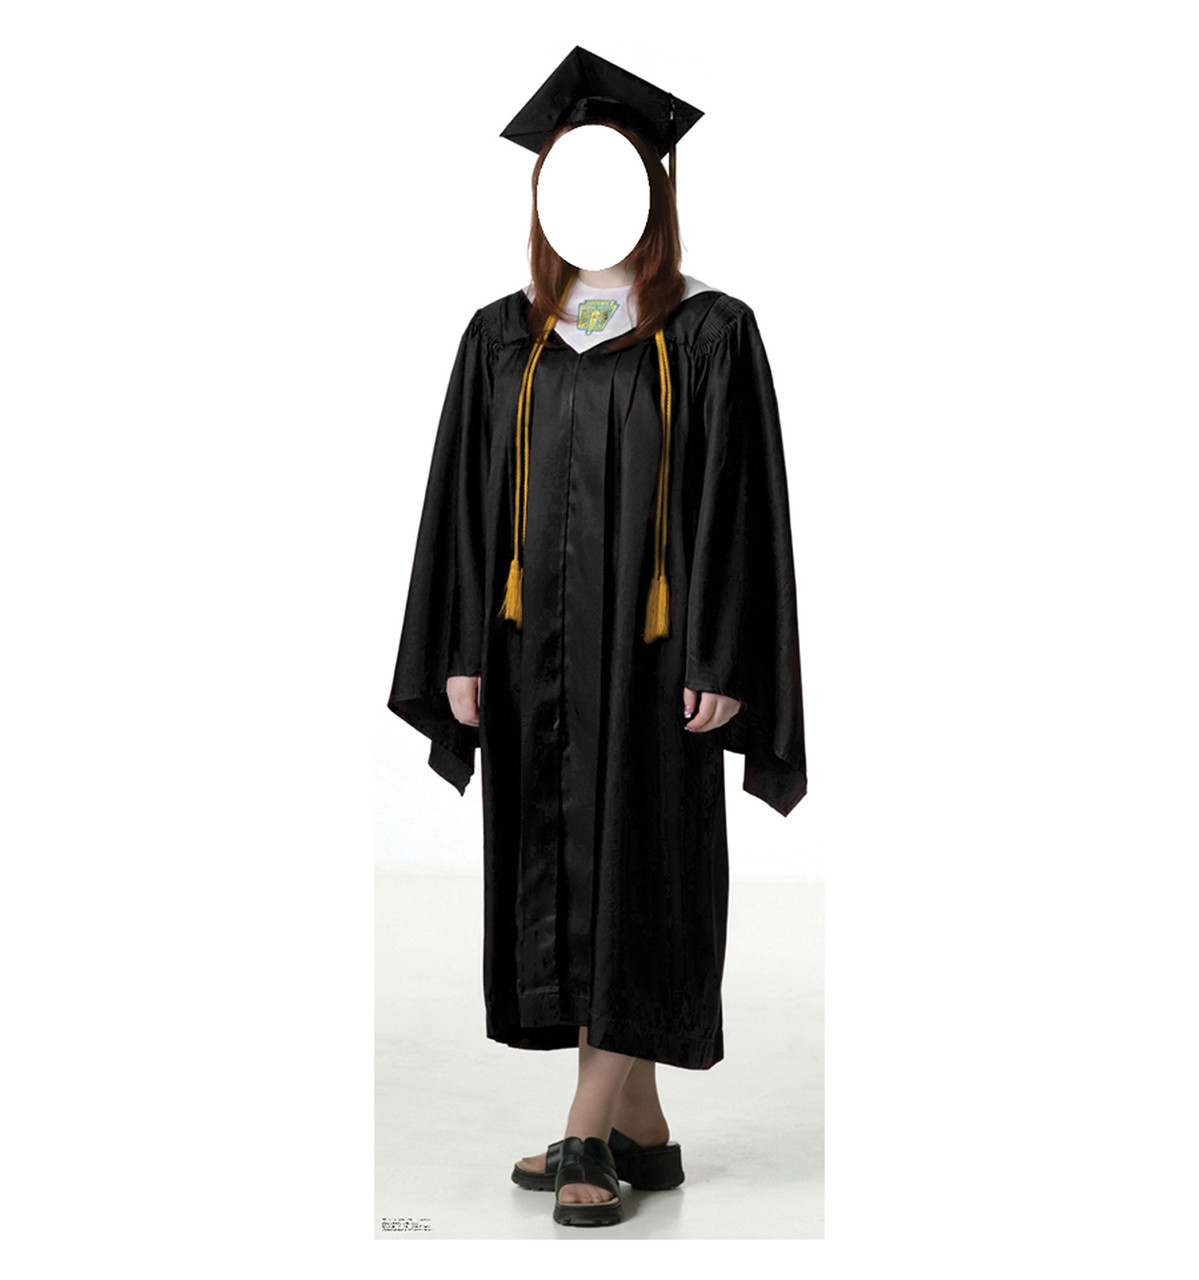 Female Graduate Black Cap and Gown - Stand-in 902